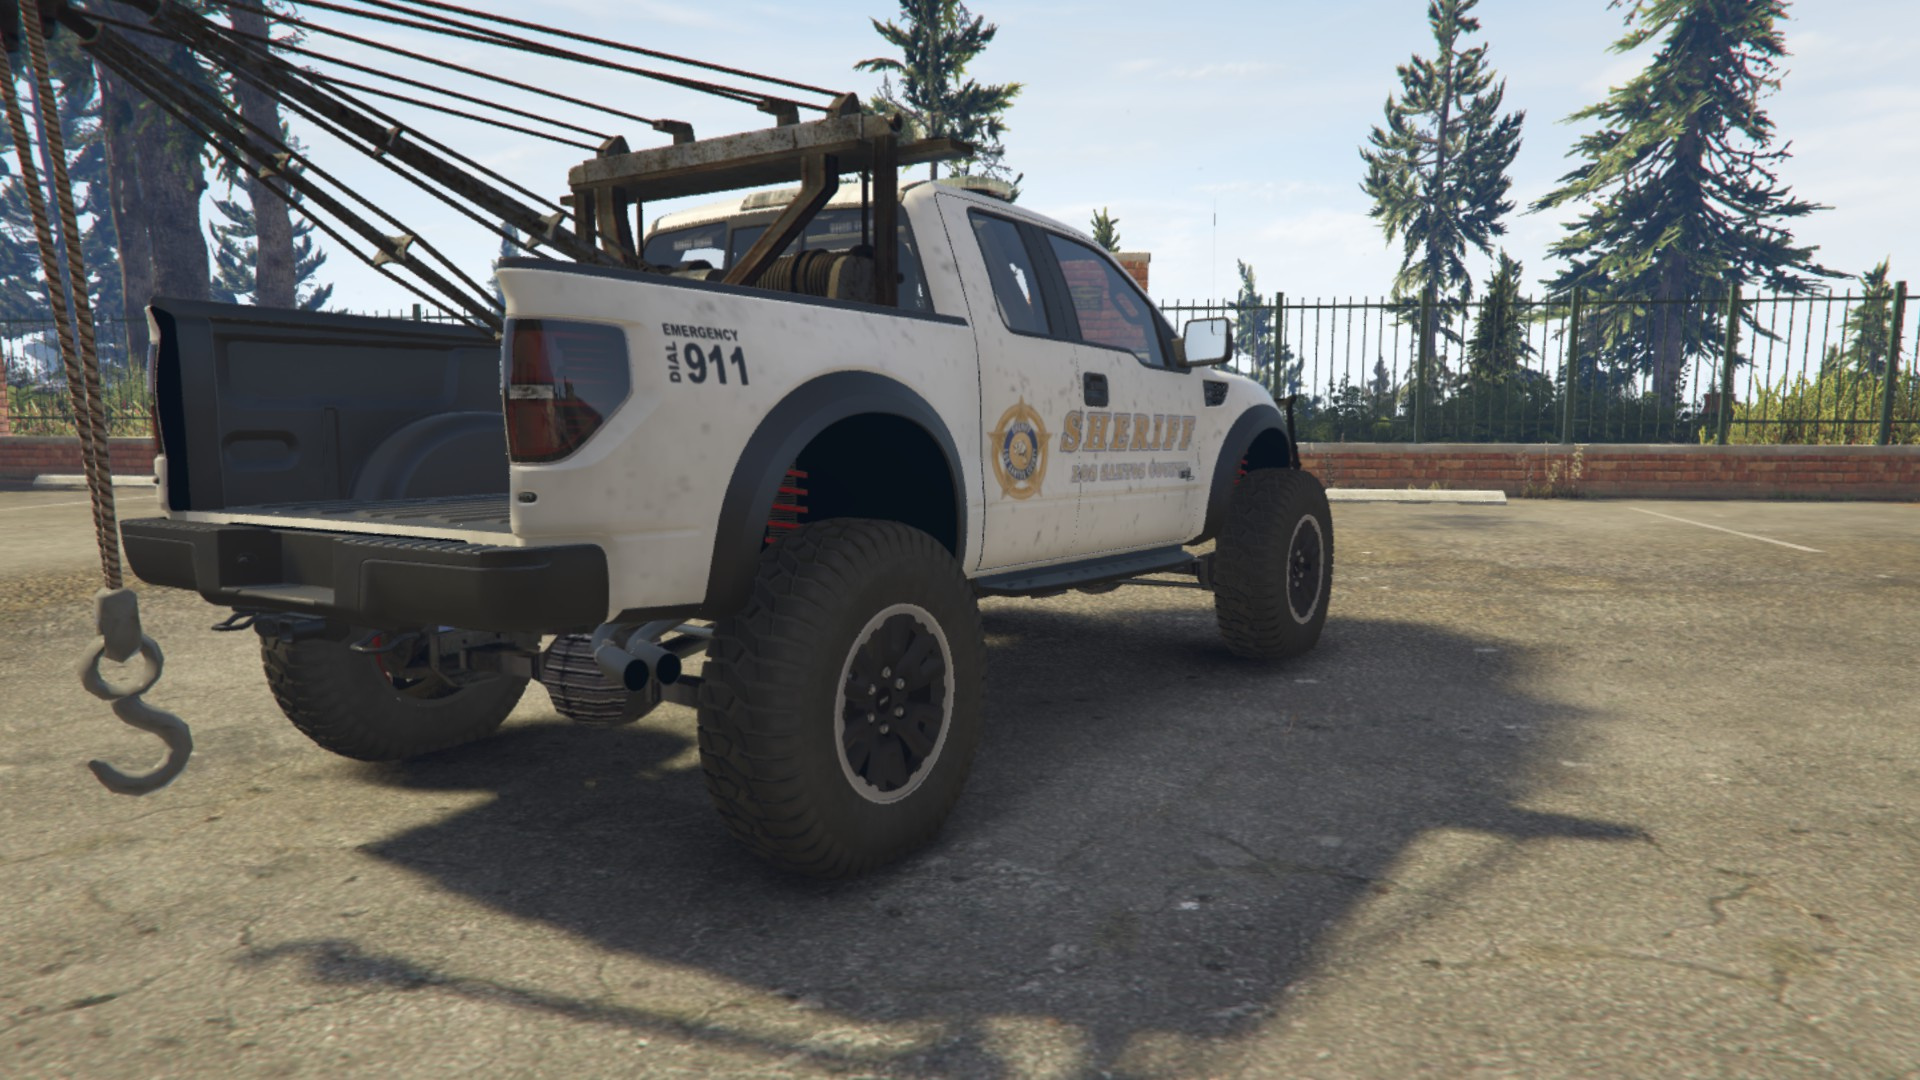 Police Raptor Lifted Towtruck - GTA5-Mods.com